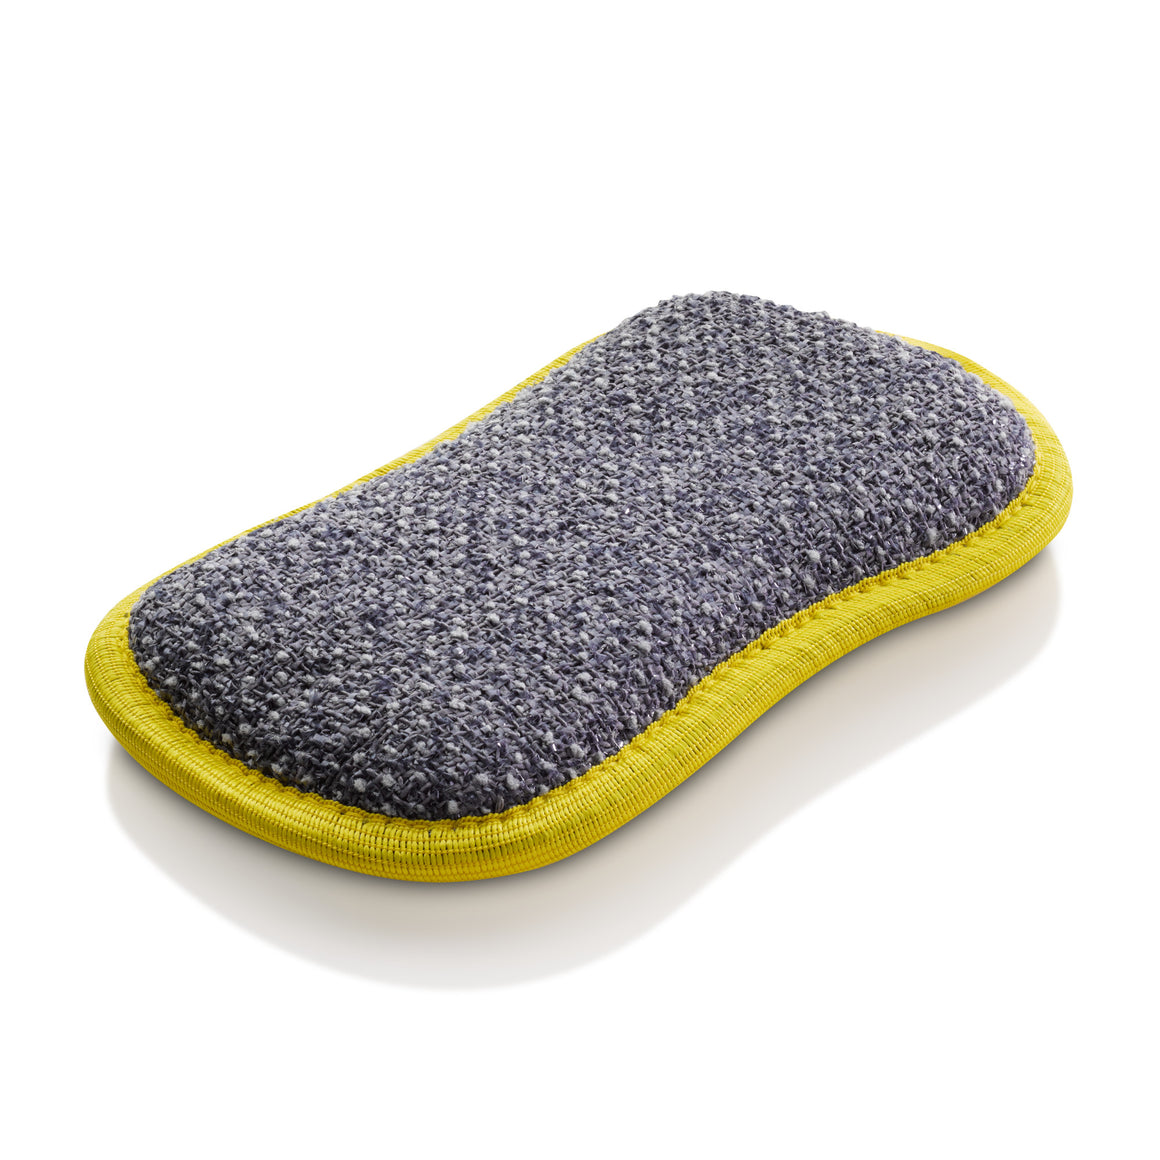 Yellow Washing Up Pad, Non-Scratch Kitchen Scrubber/Wiper - Brilliant for Removing Stuck-On Food from Pots & Pans